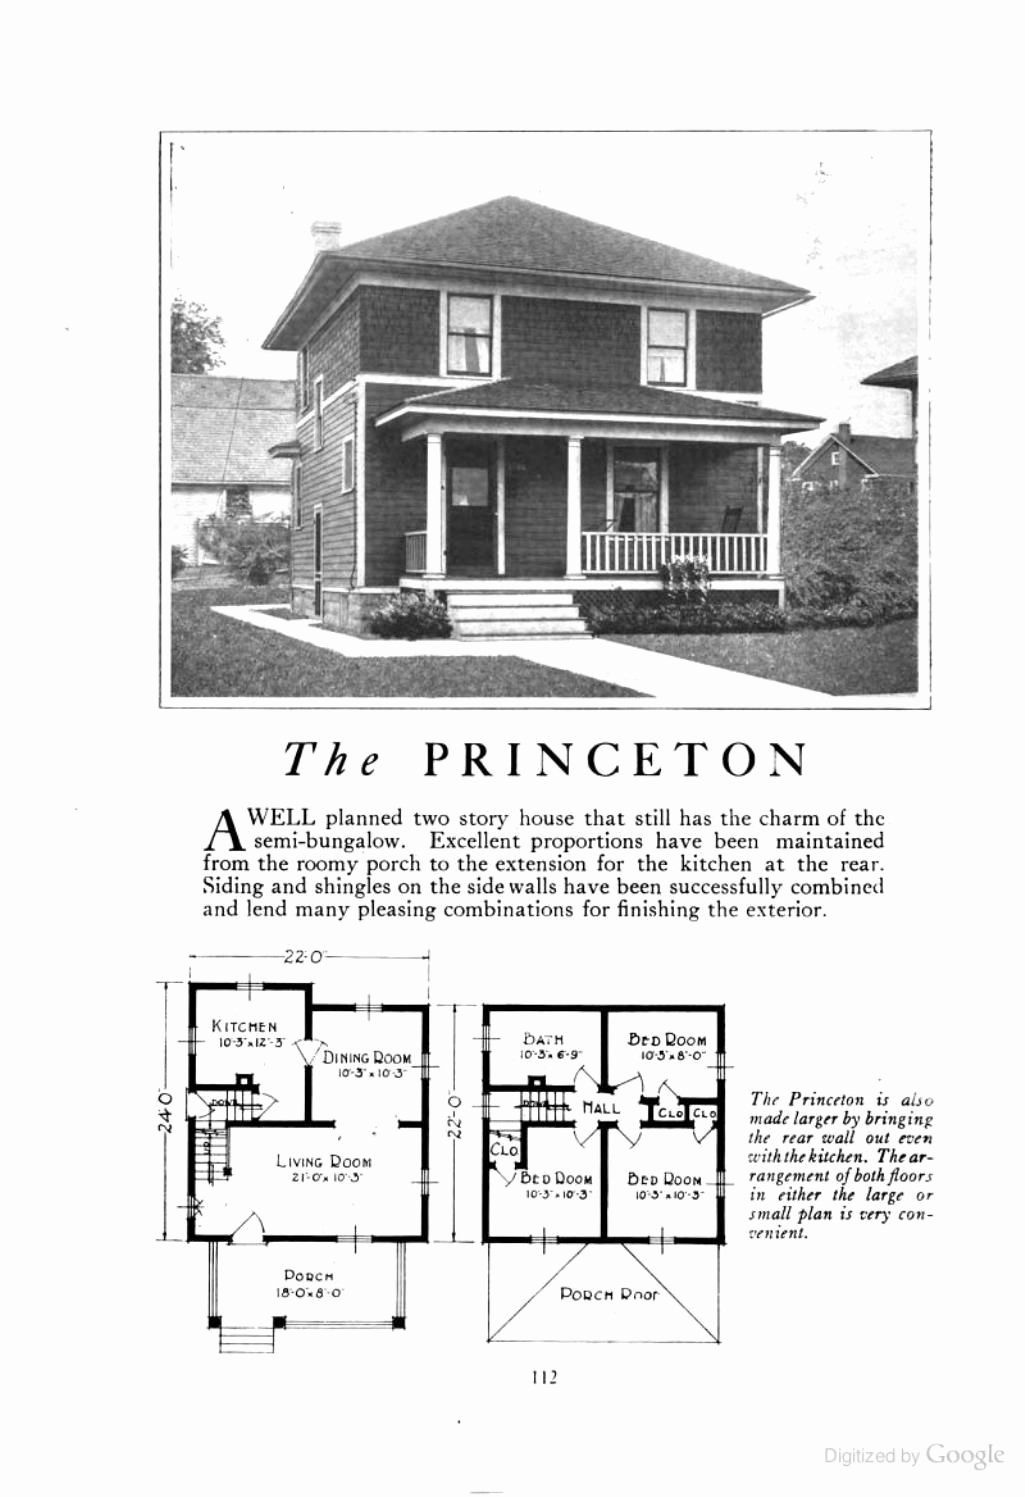 4 Square House Plans Inspirational The Princeton An American Foursquare Kit House House Plan In 2020 Four Square Homes Square House Plans House Plans